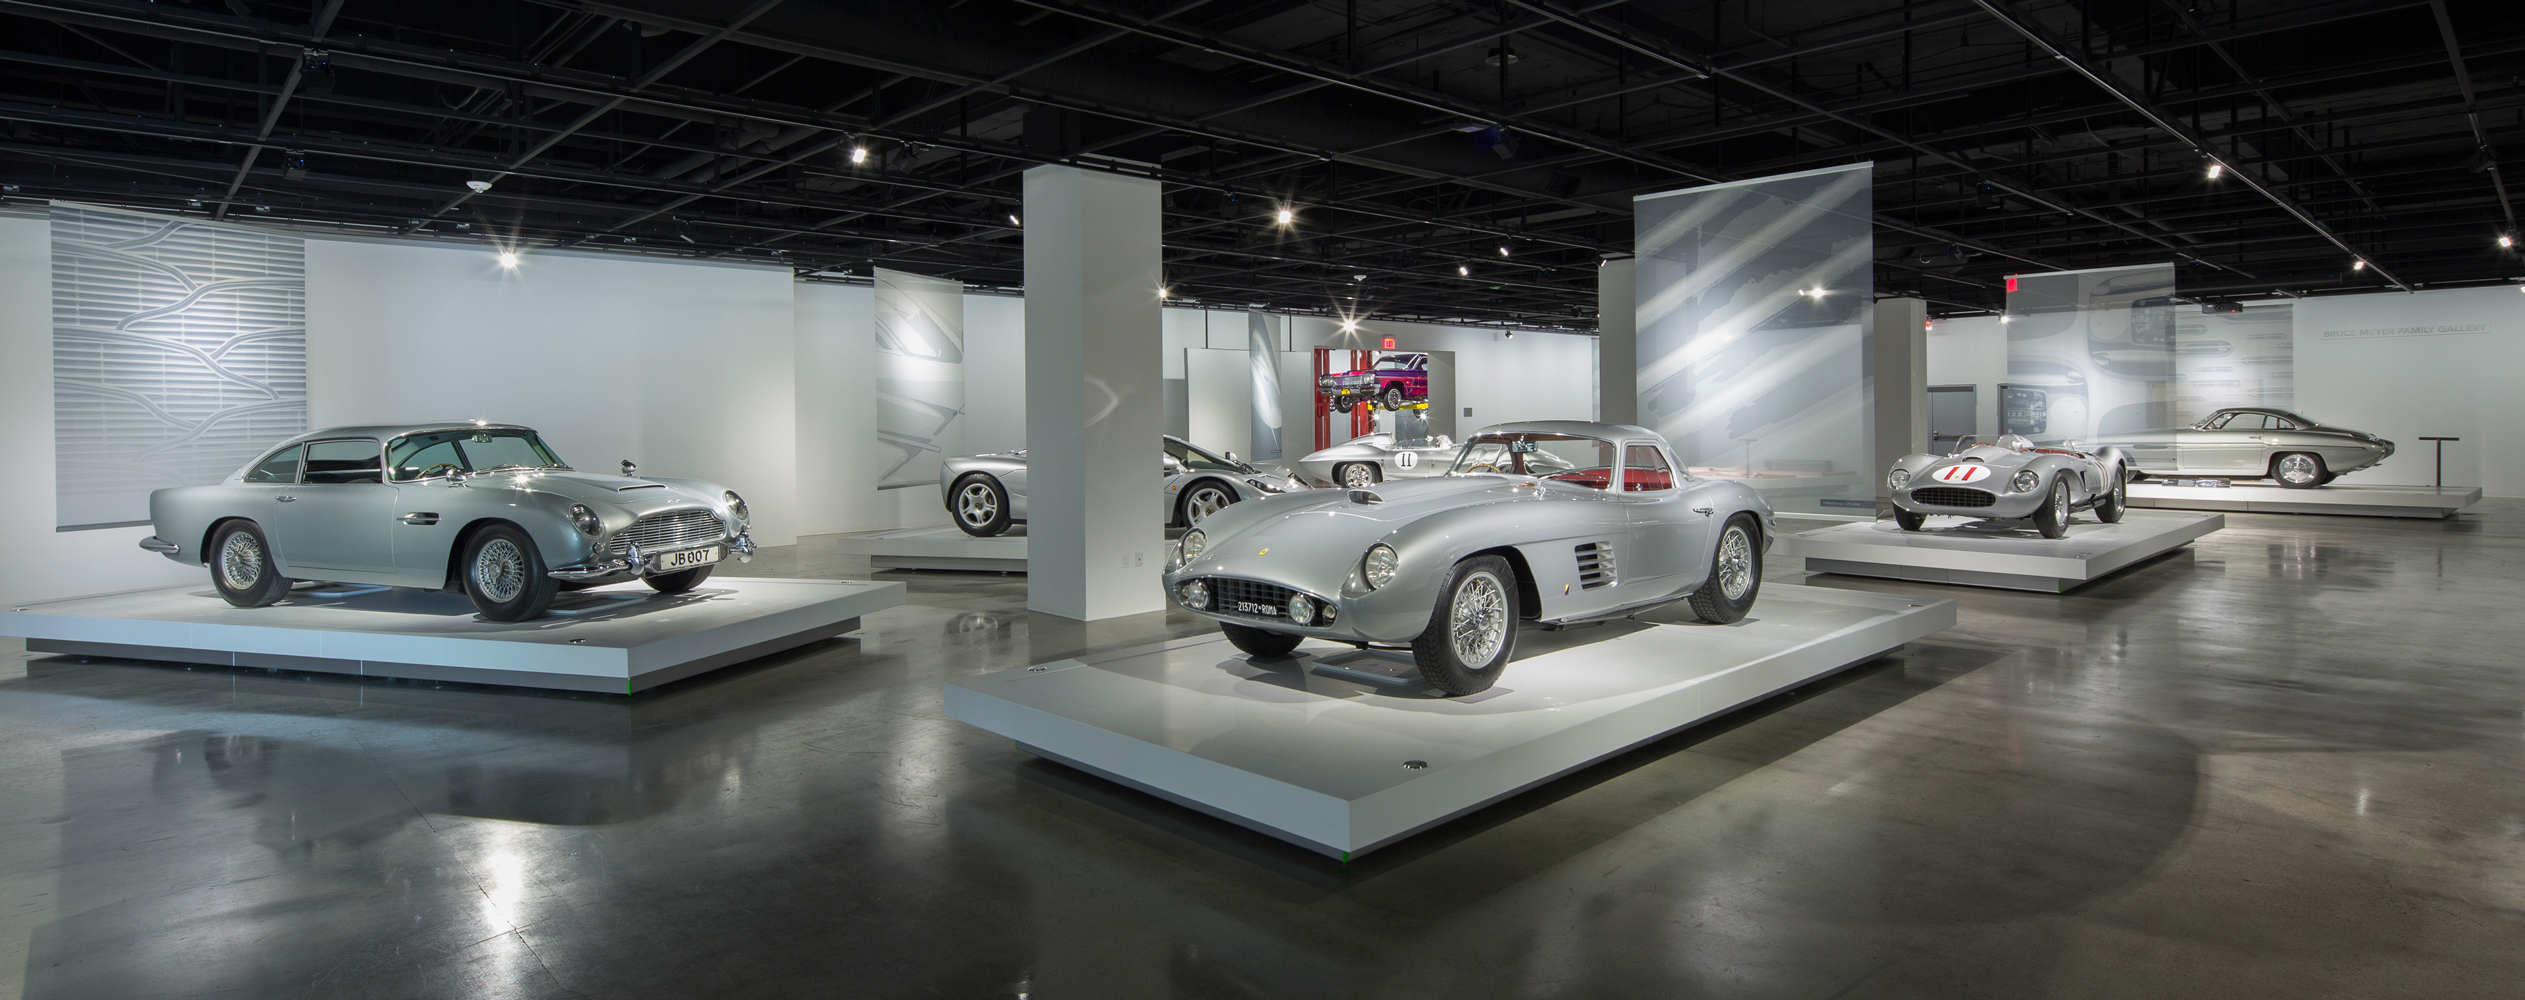 $200 Million in Silver Automobiles Equals Pure Gold